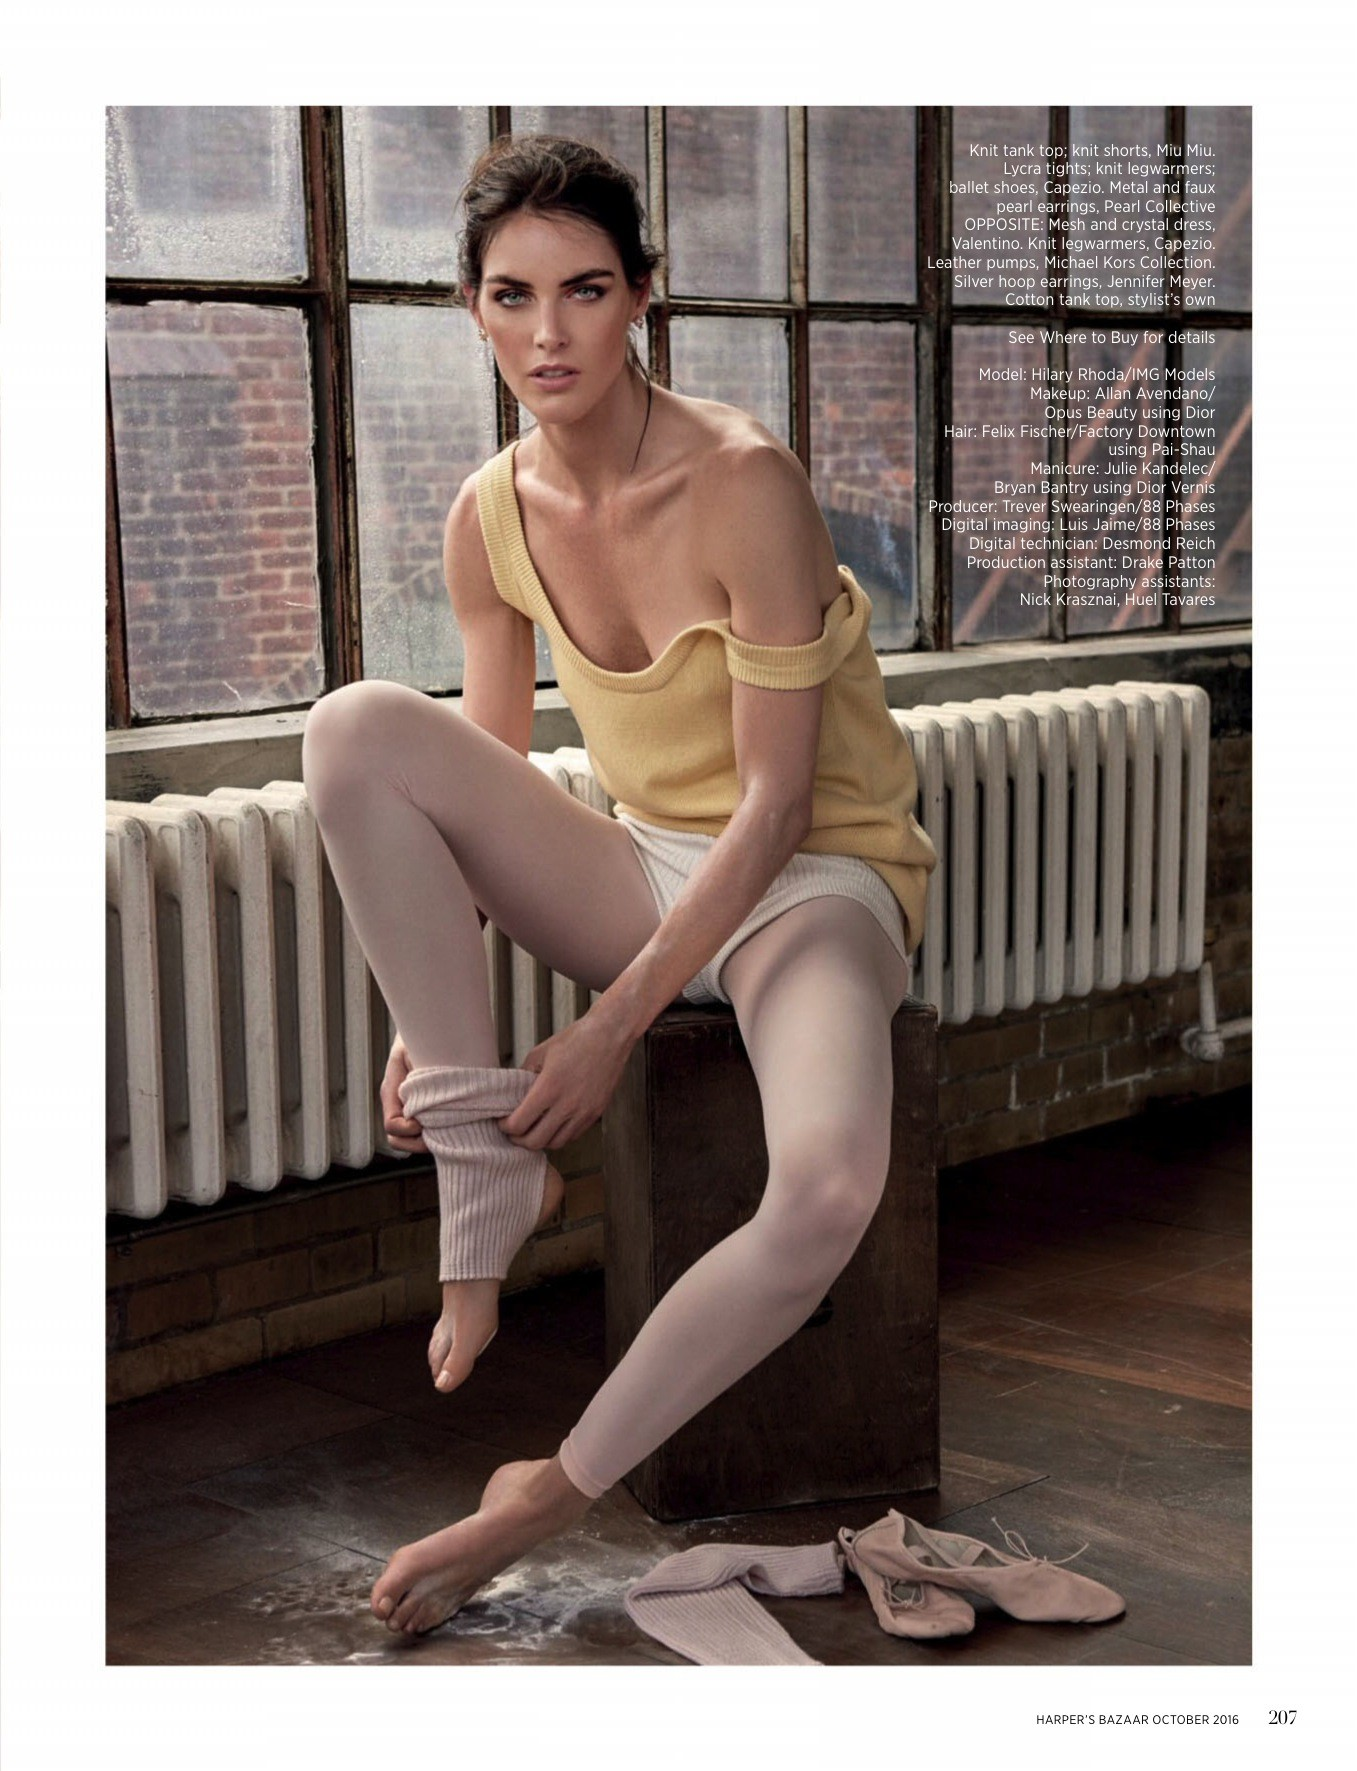 hilary rhoda naked pictures underscore depiction